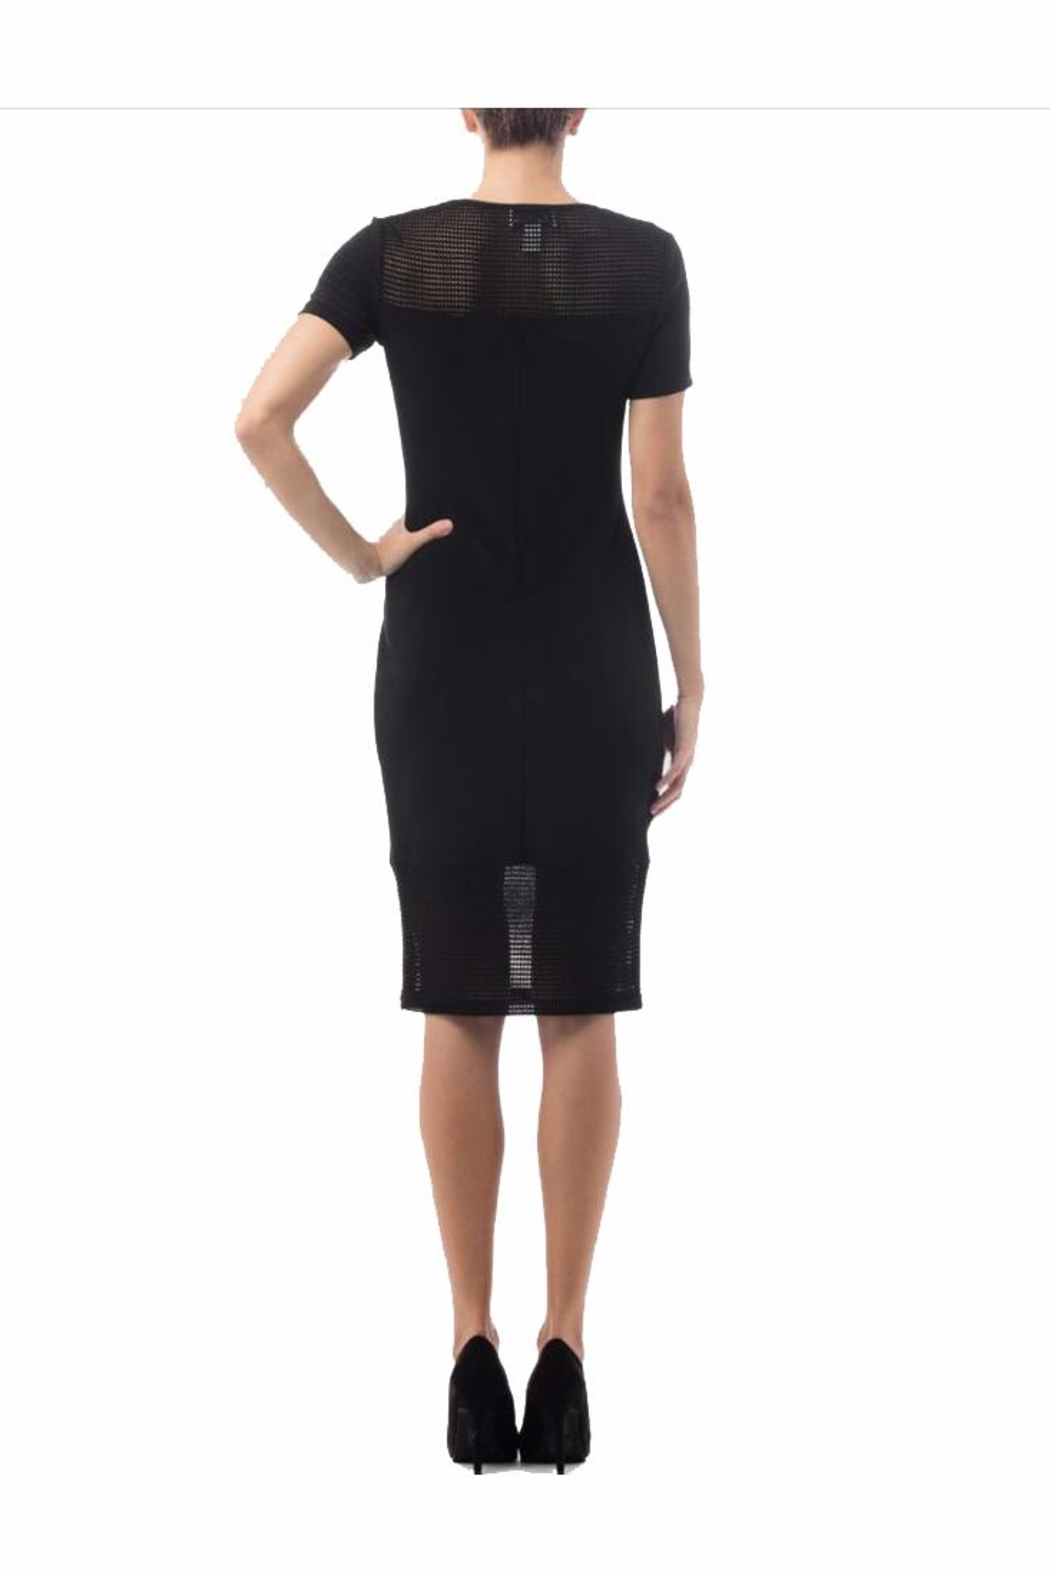 Joseph Ribkoff Mesh Detail Black Dress - Front Full Image